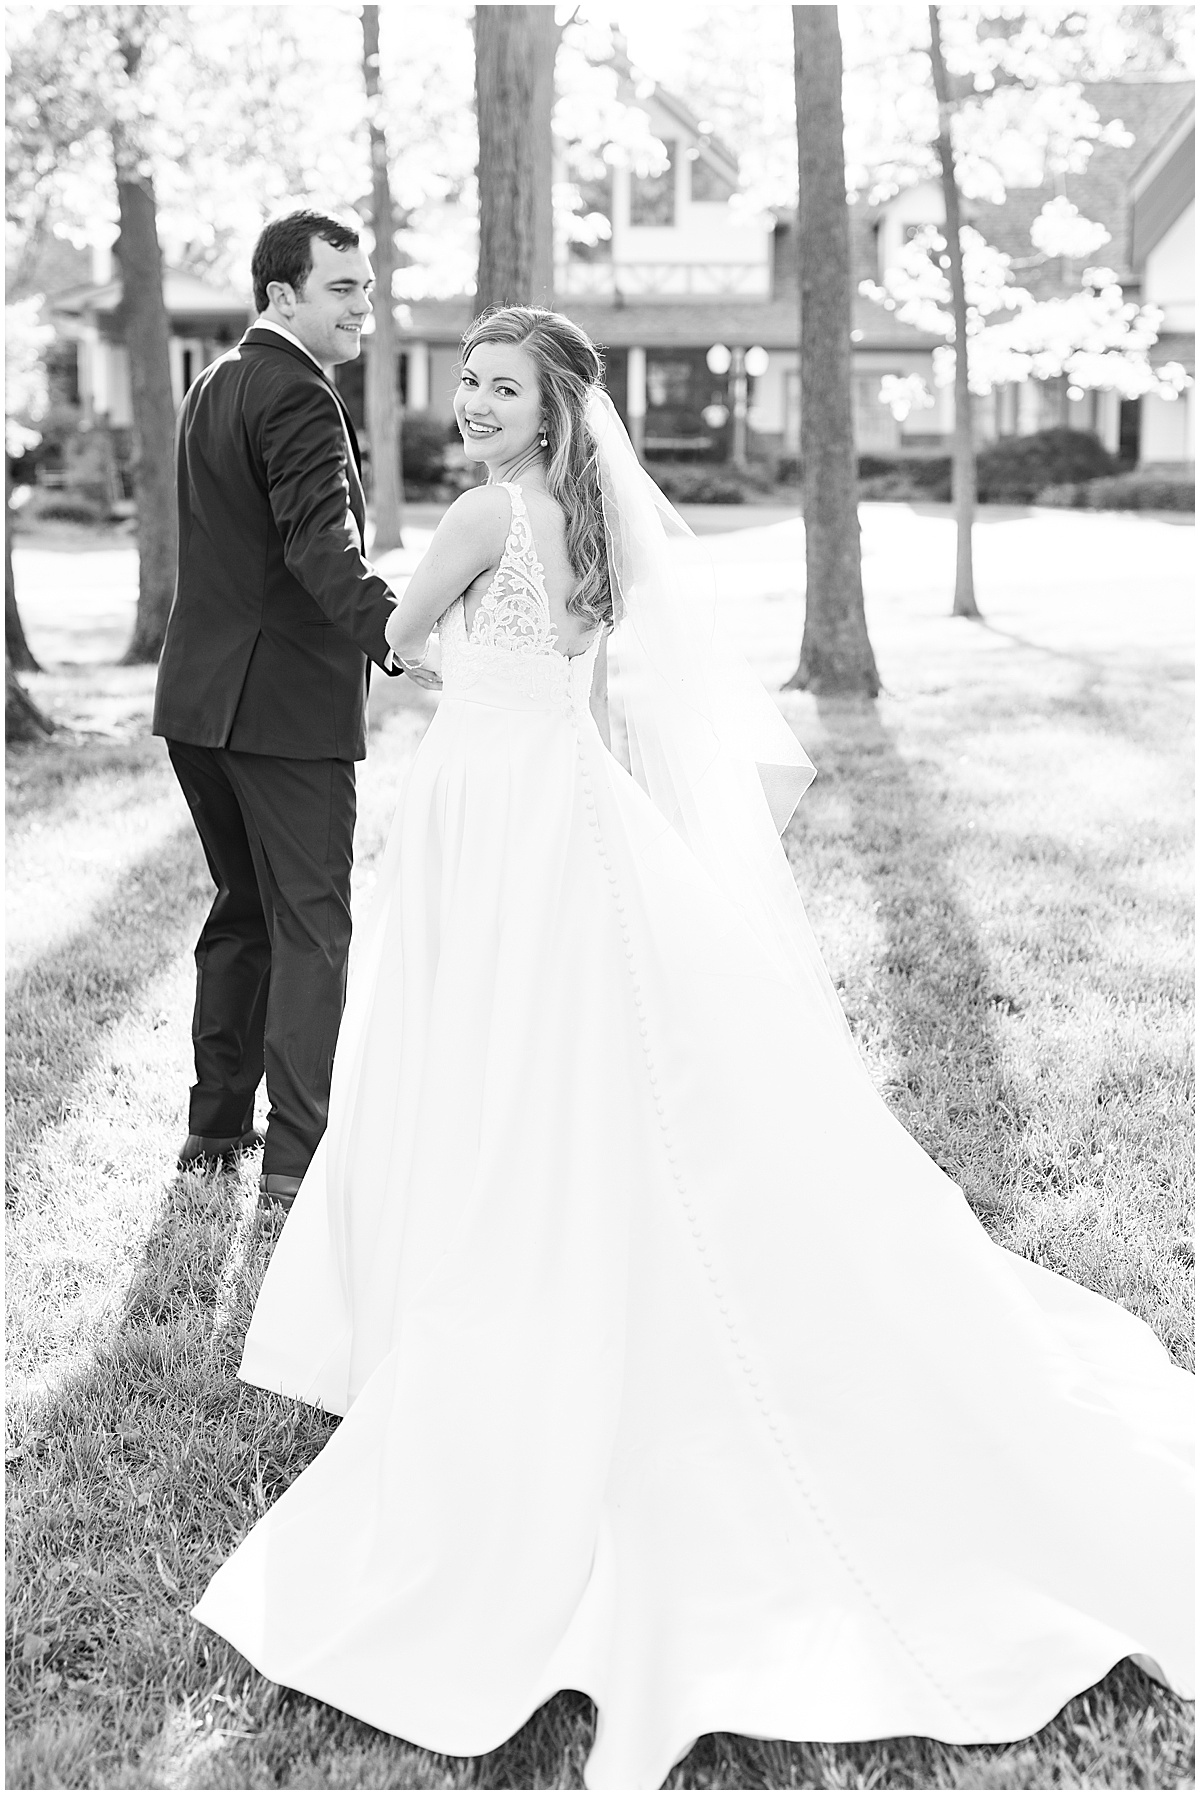 Just married photos after Lizton Lodge Wedding in Lizton, Indiana